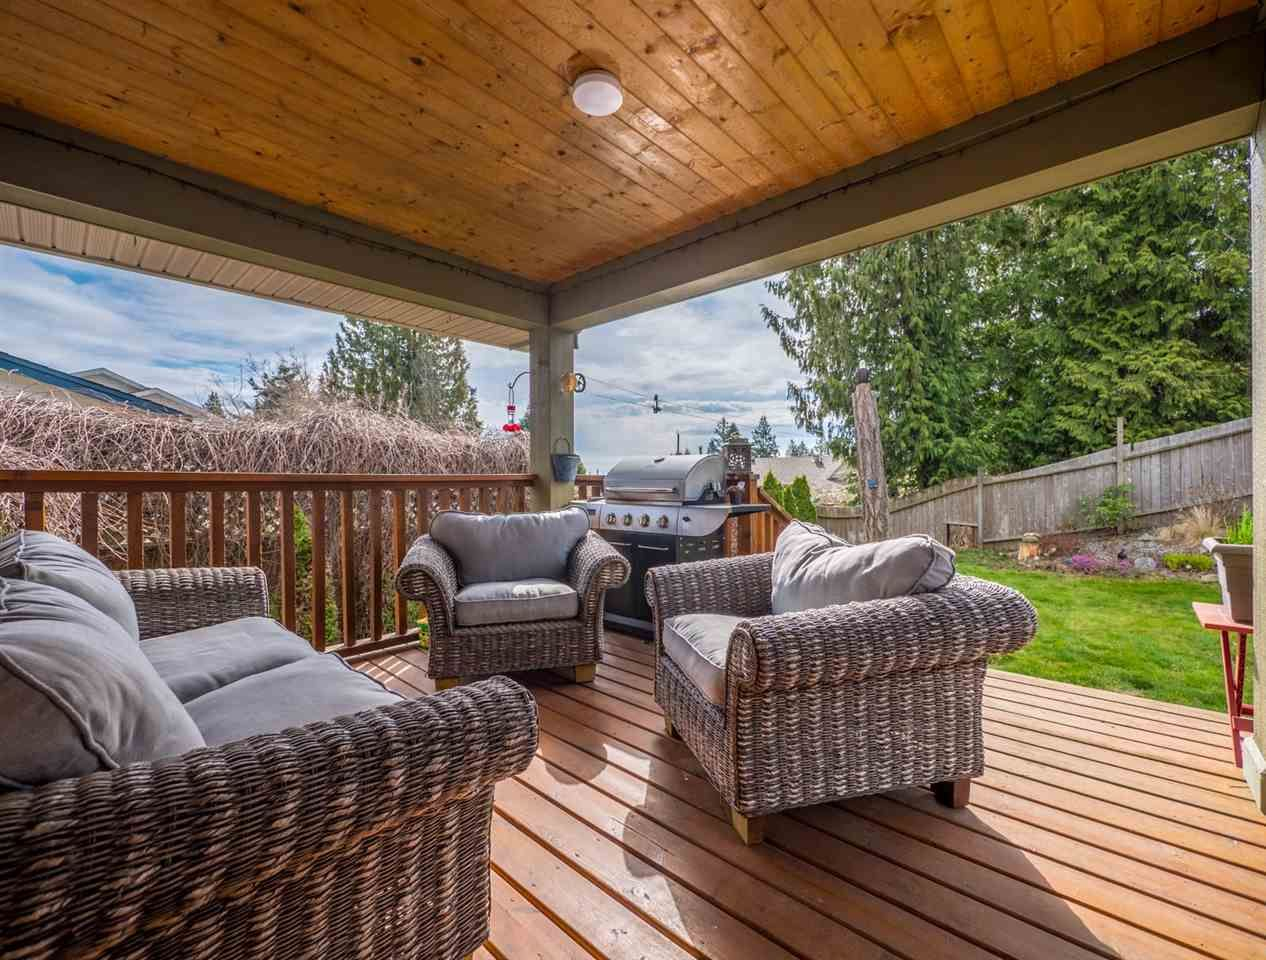 Photo 19: Photos: 6335 PICADILLY Place in Sechelt: Sechelt District House for sale (Sunshine Coast)  : MLS®# R2248834